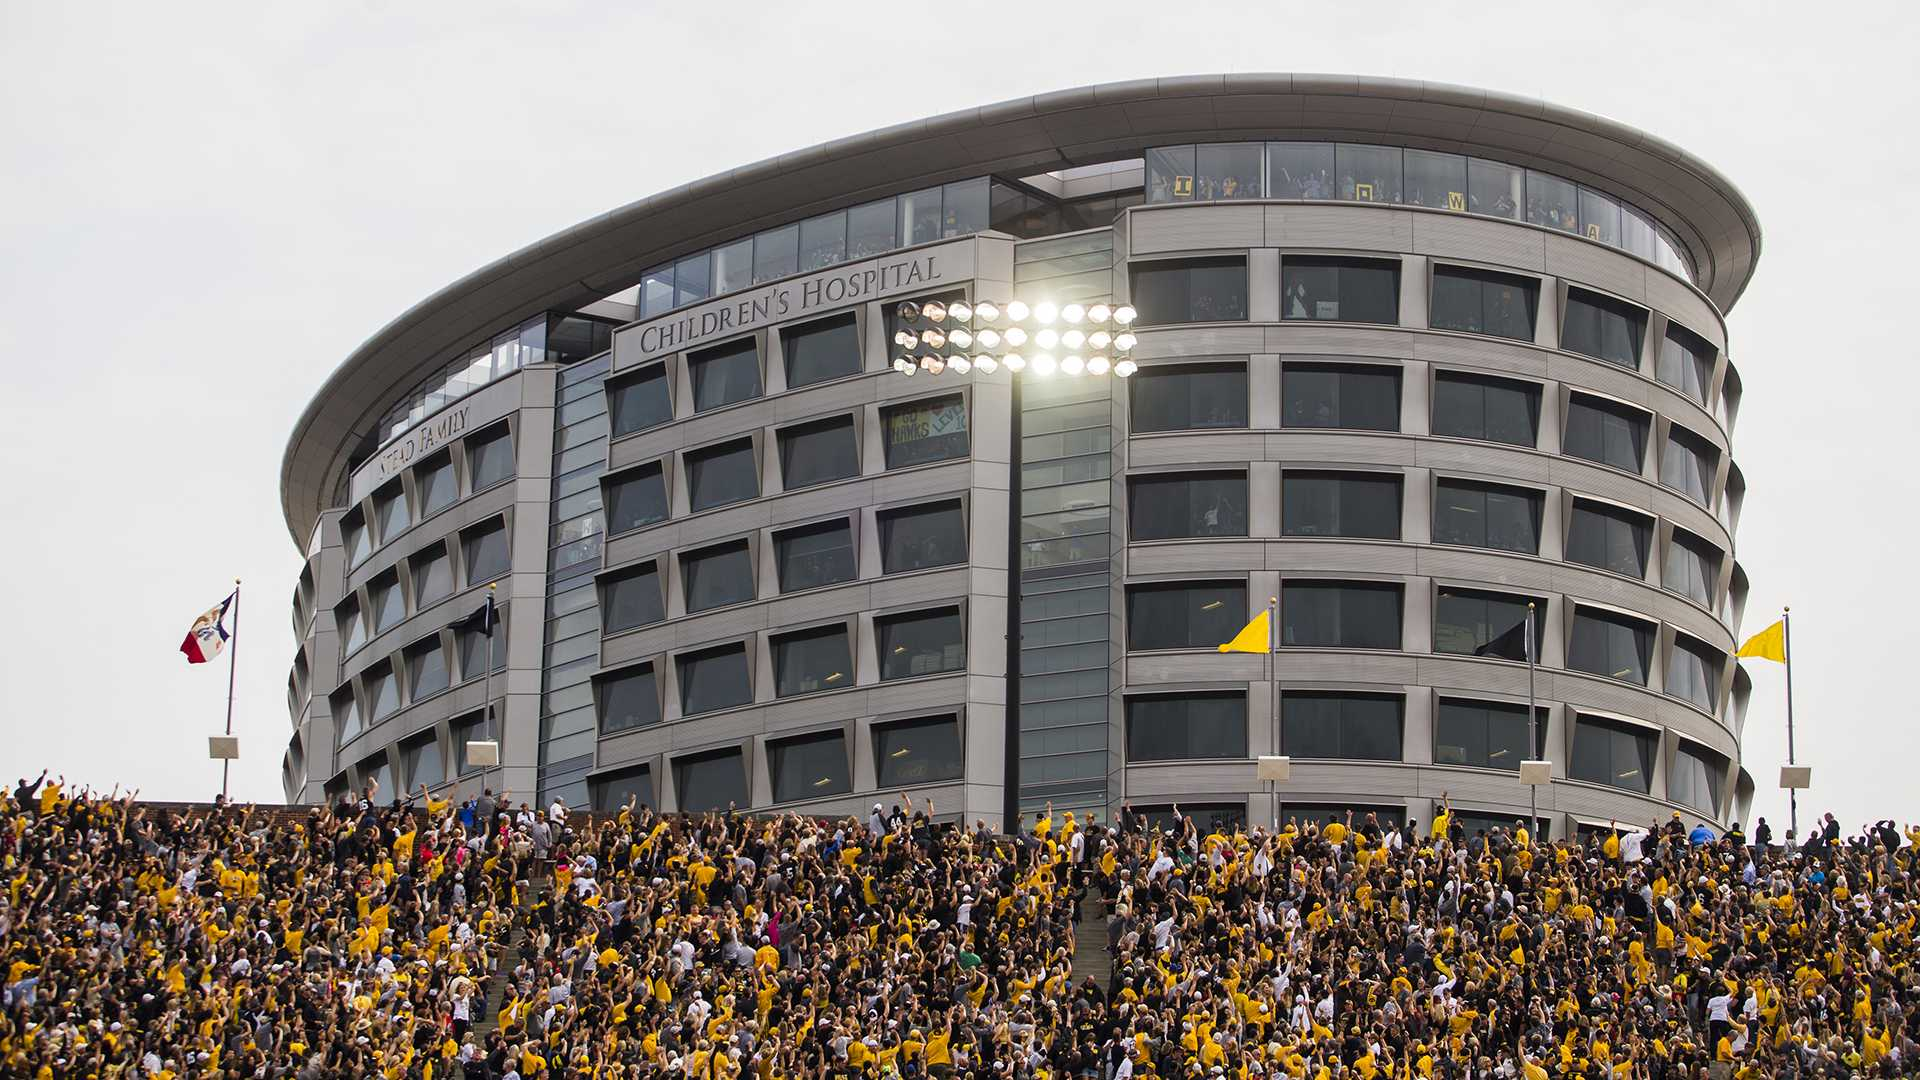 Iowa fans wave to kids in the Stead Family Children's Hospital during an NCAA football game between Iowa and Wyoming in Kinnick Stadium on Saturday, Sept. 2, 2017. The Stead Family Children's hospital has an observation floor where families can go to watch games in Kinnick with a skybox-style view. (Joseph Cress/The Daily Iowan)